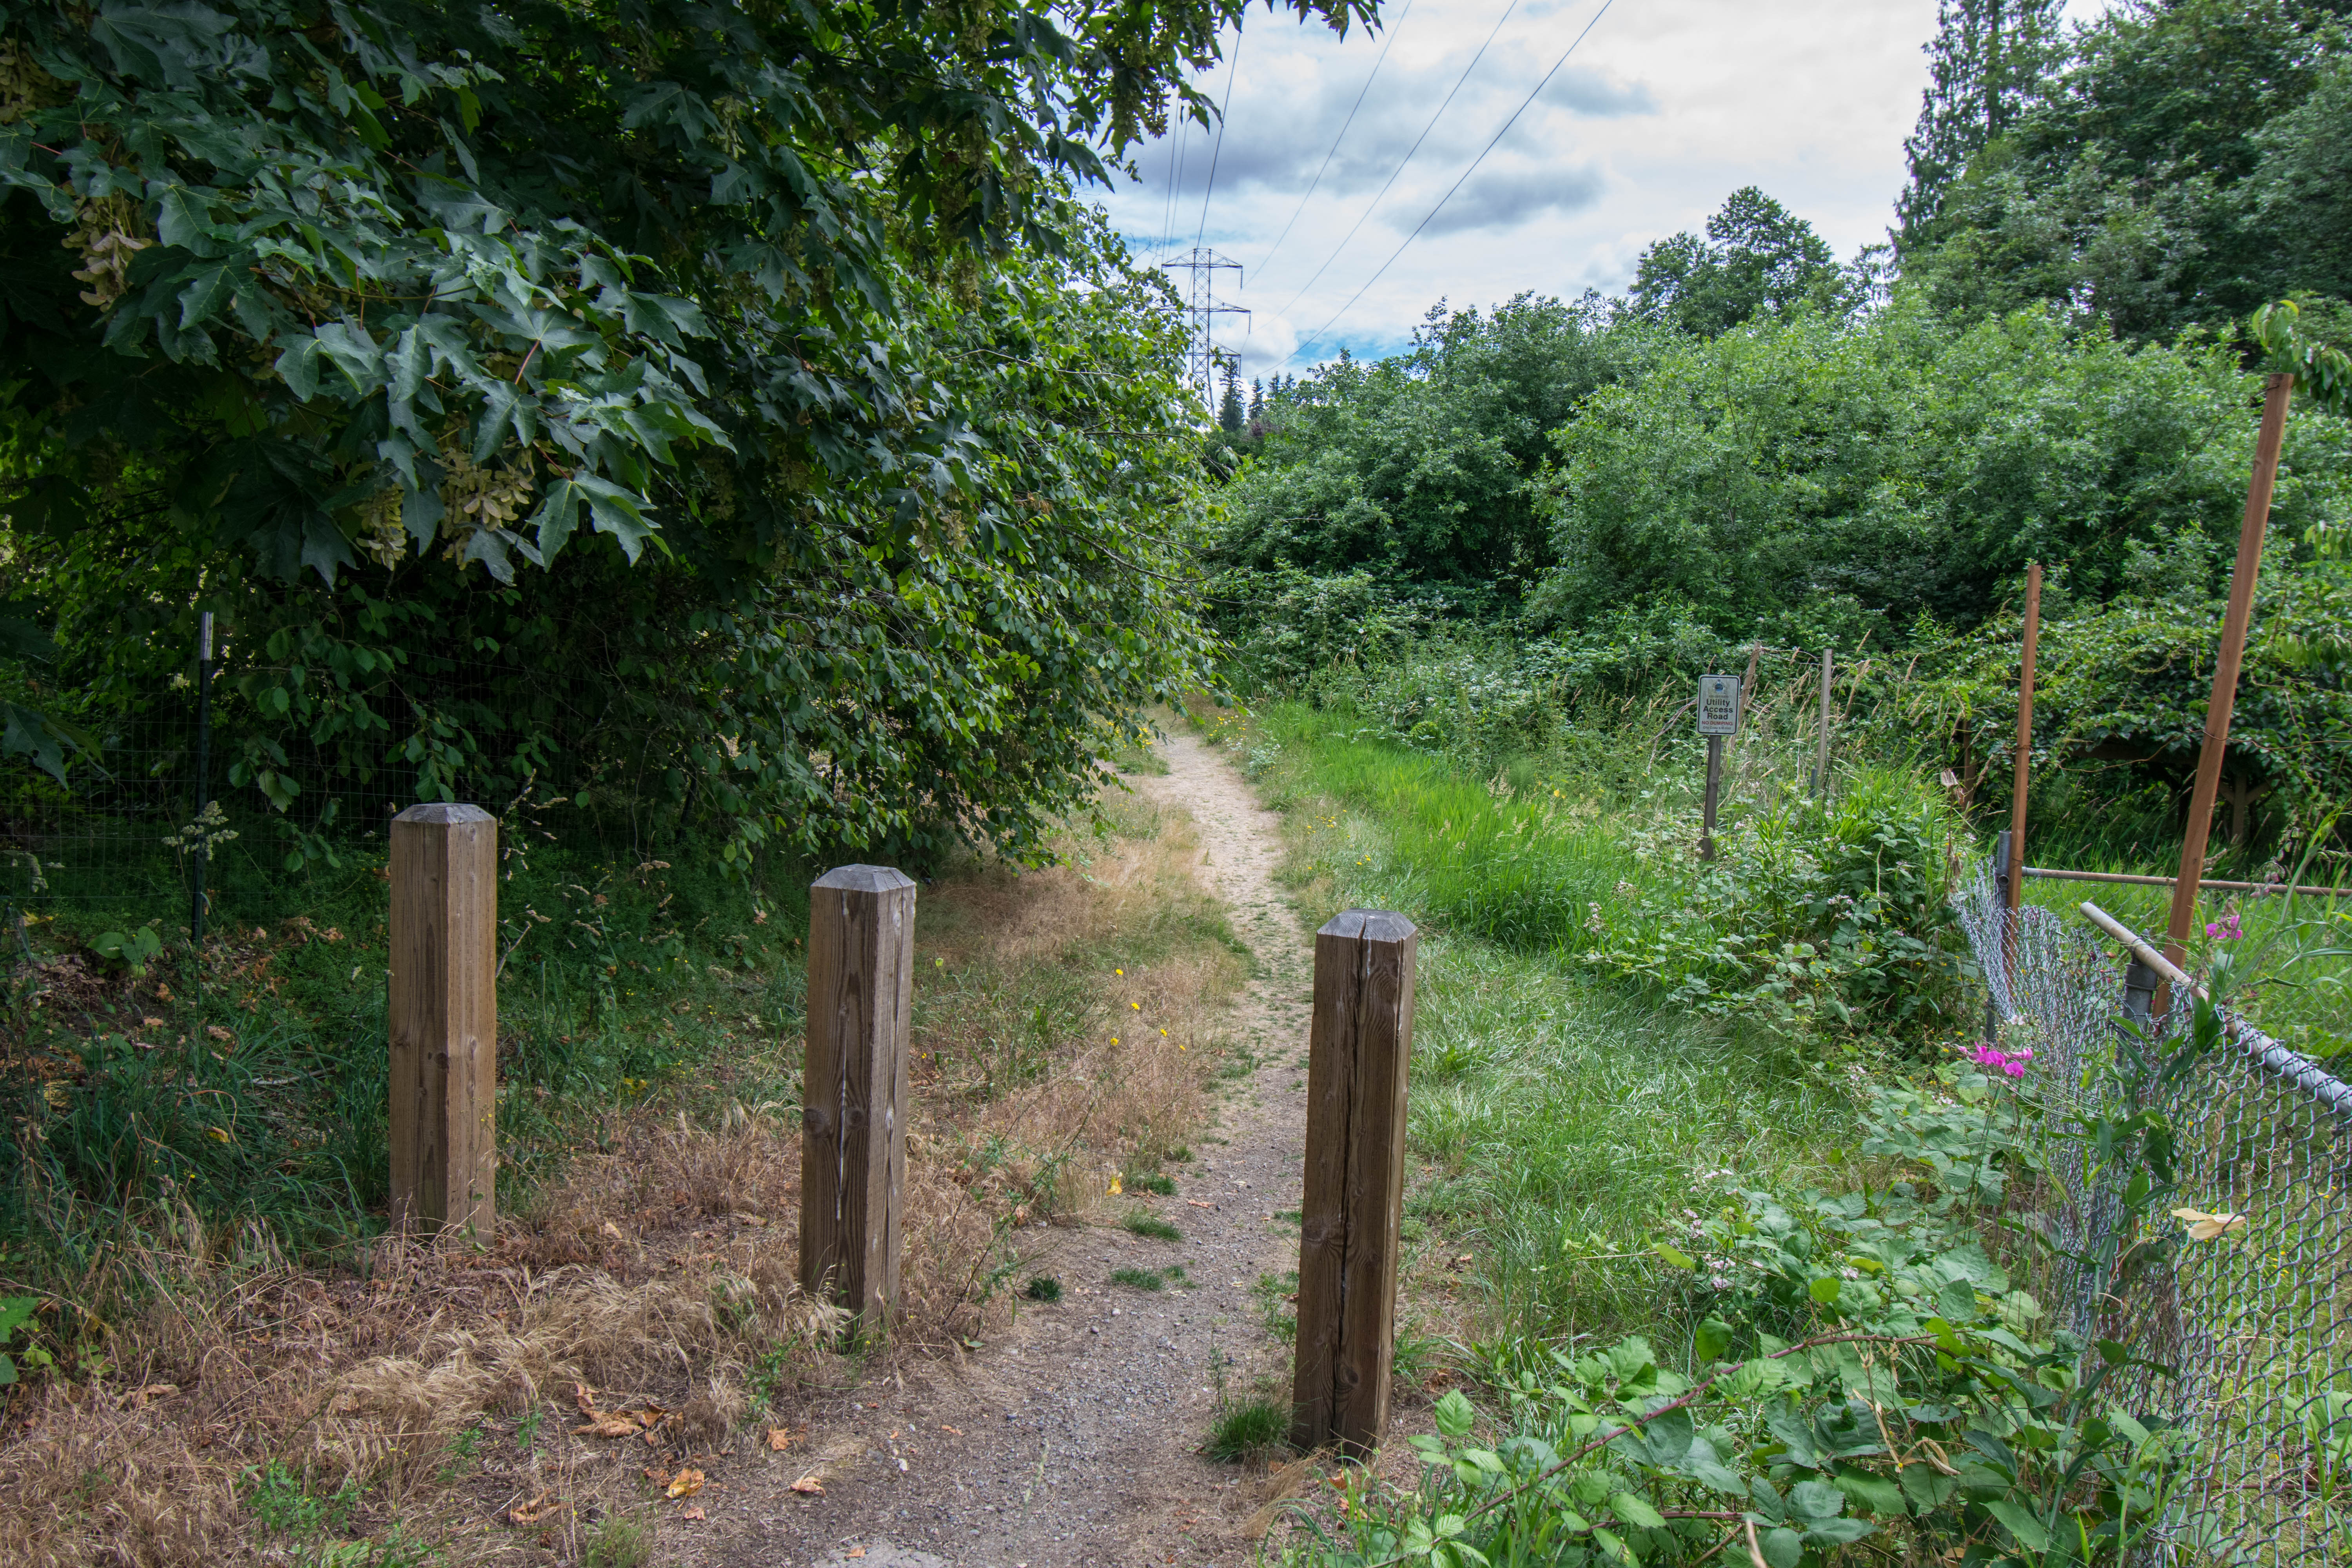 ../images/trails/horse//02 Trail southbound from SE 74th St.jpg